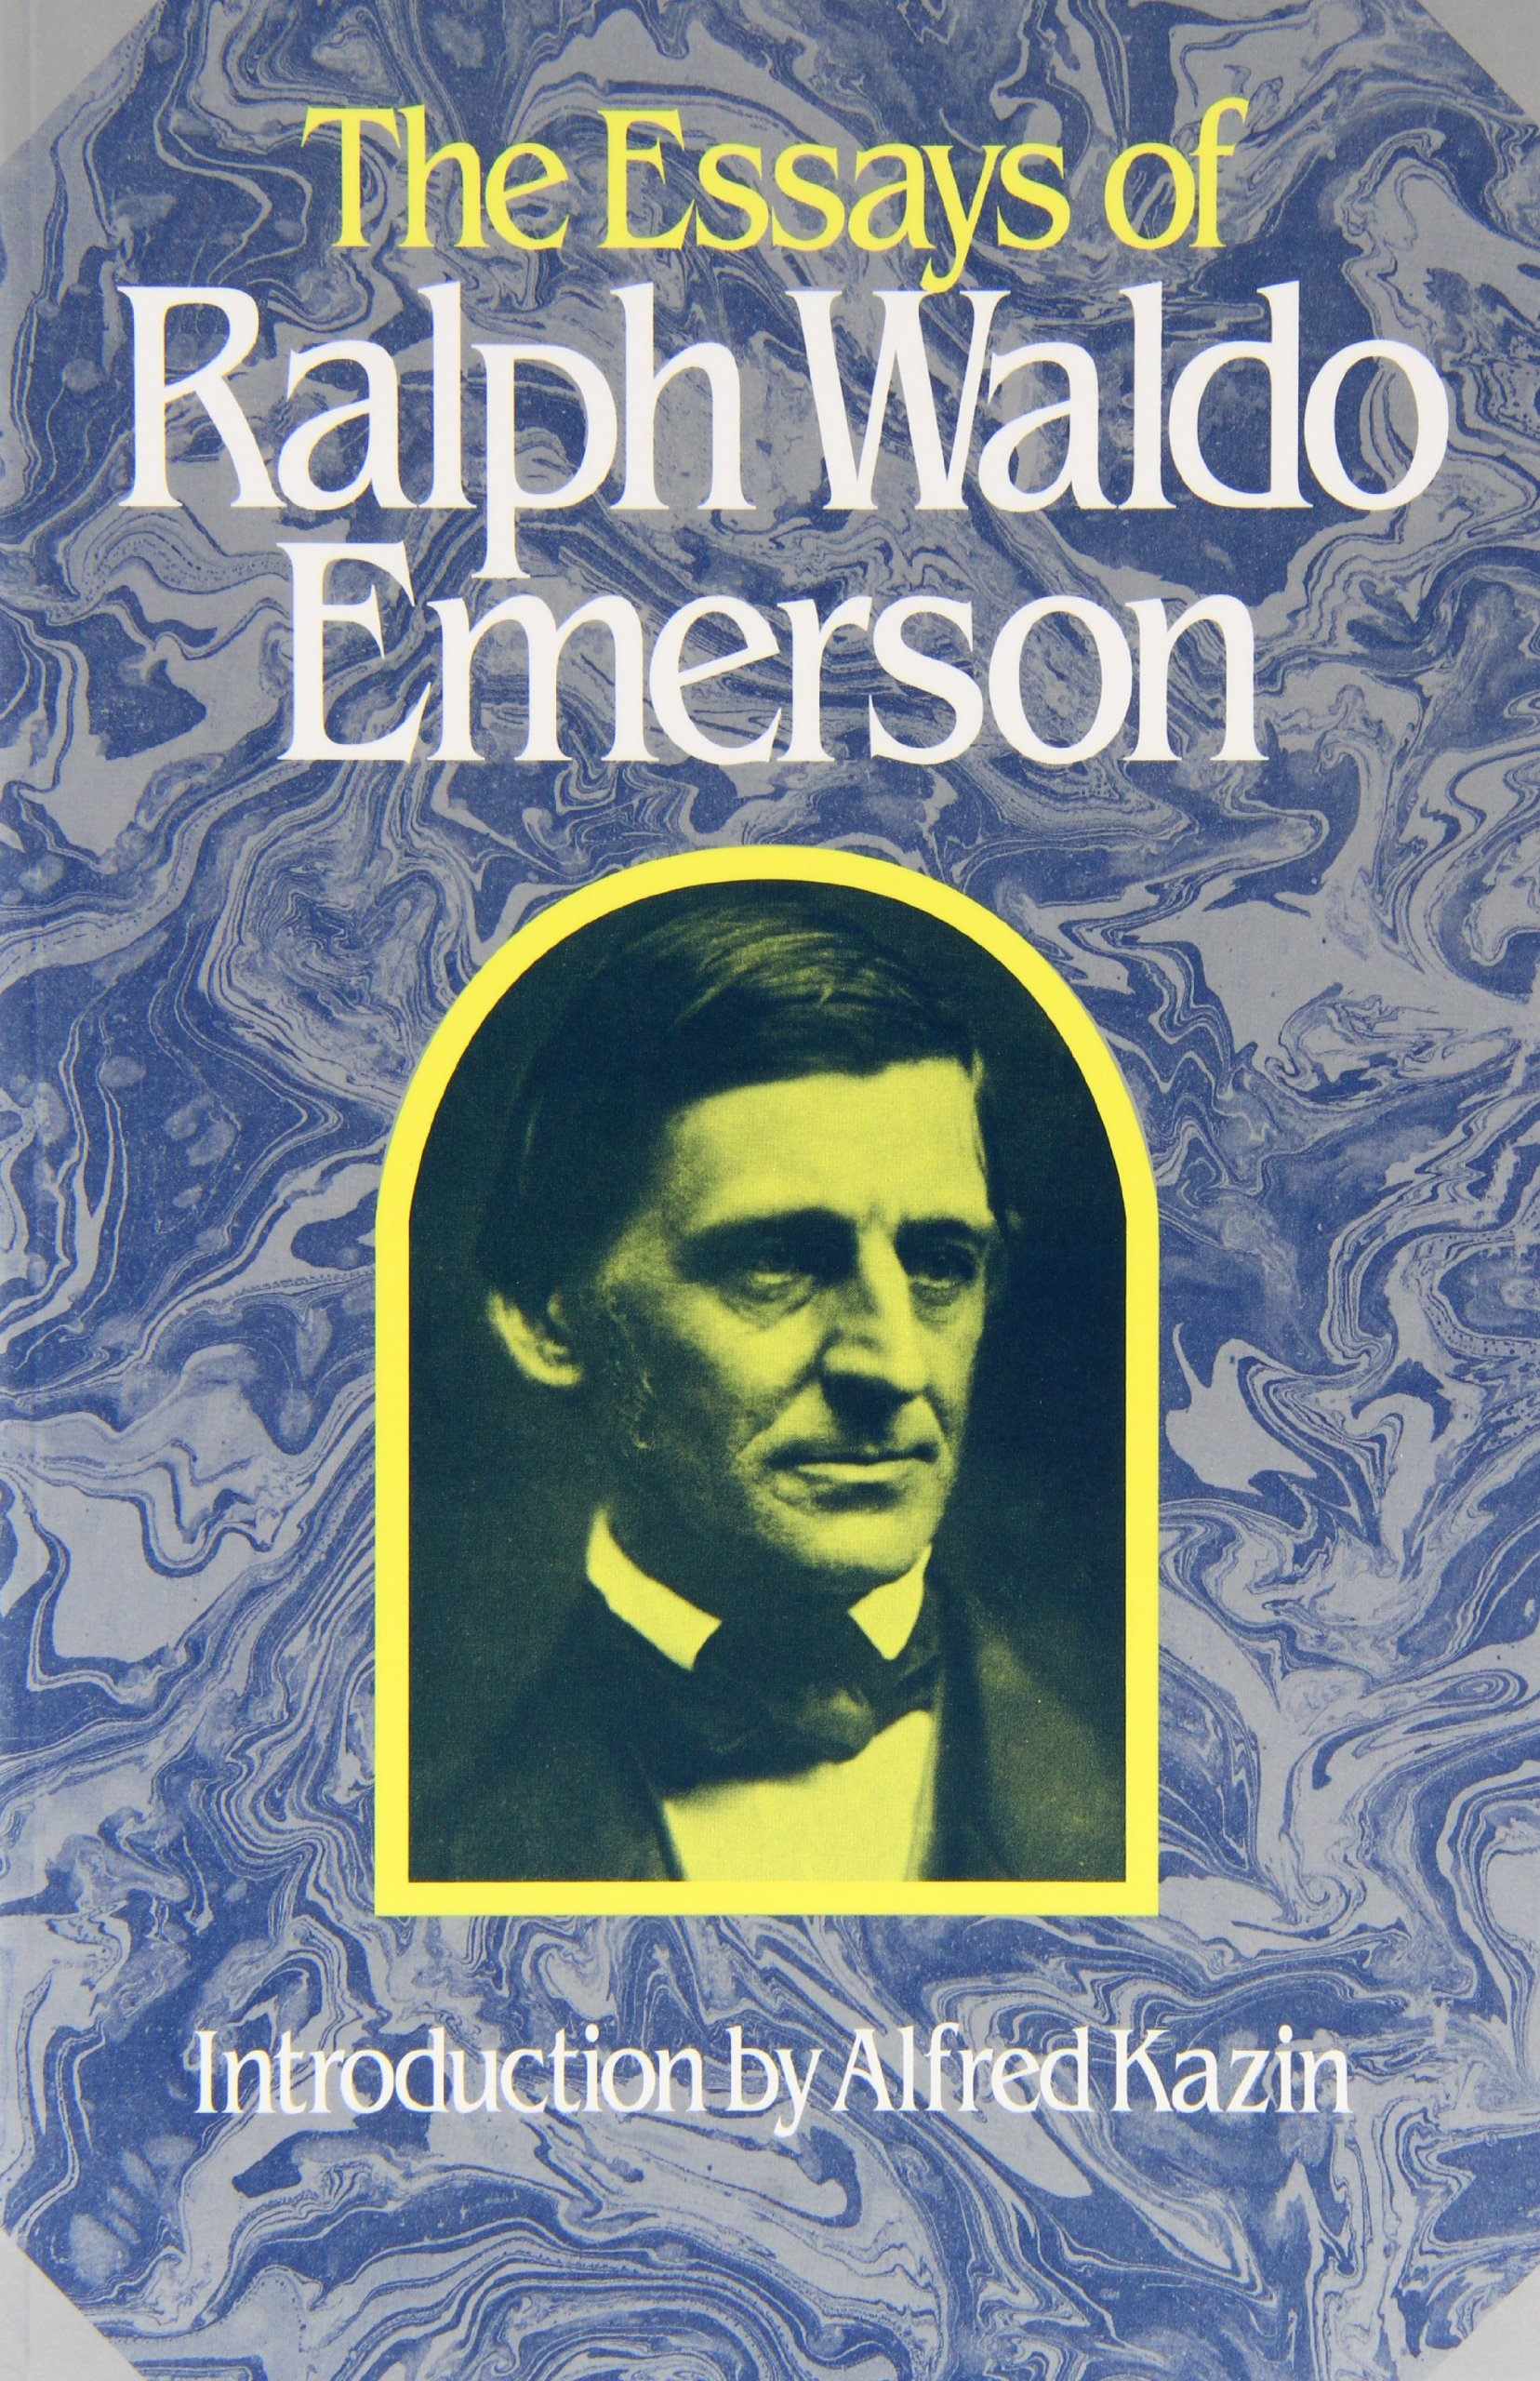 001 91blpvu4wrl Essay Example Emerson Dreaded Essays Self Reliance And Other Second Series Nature Full